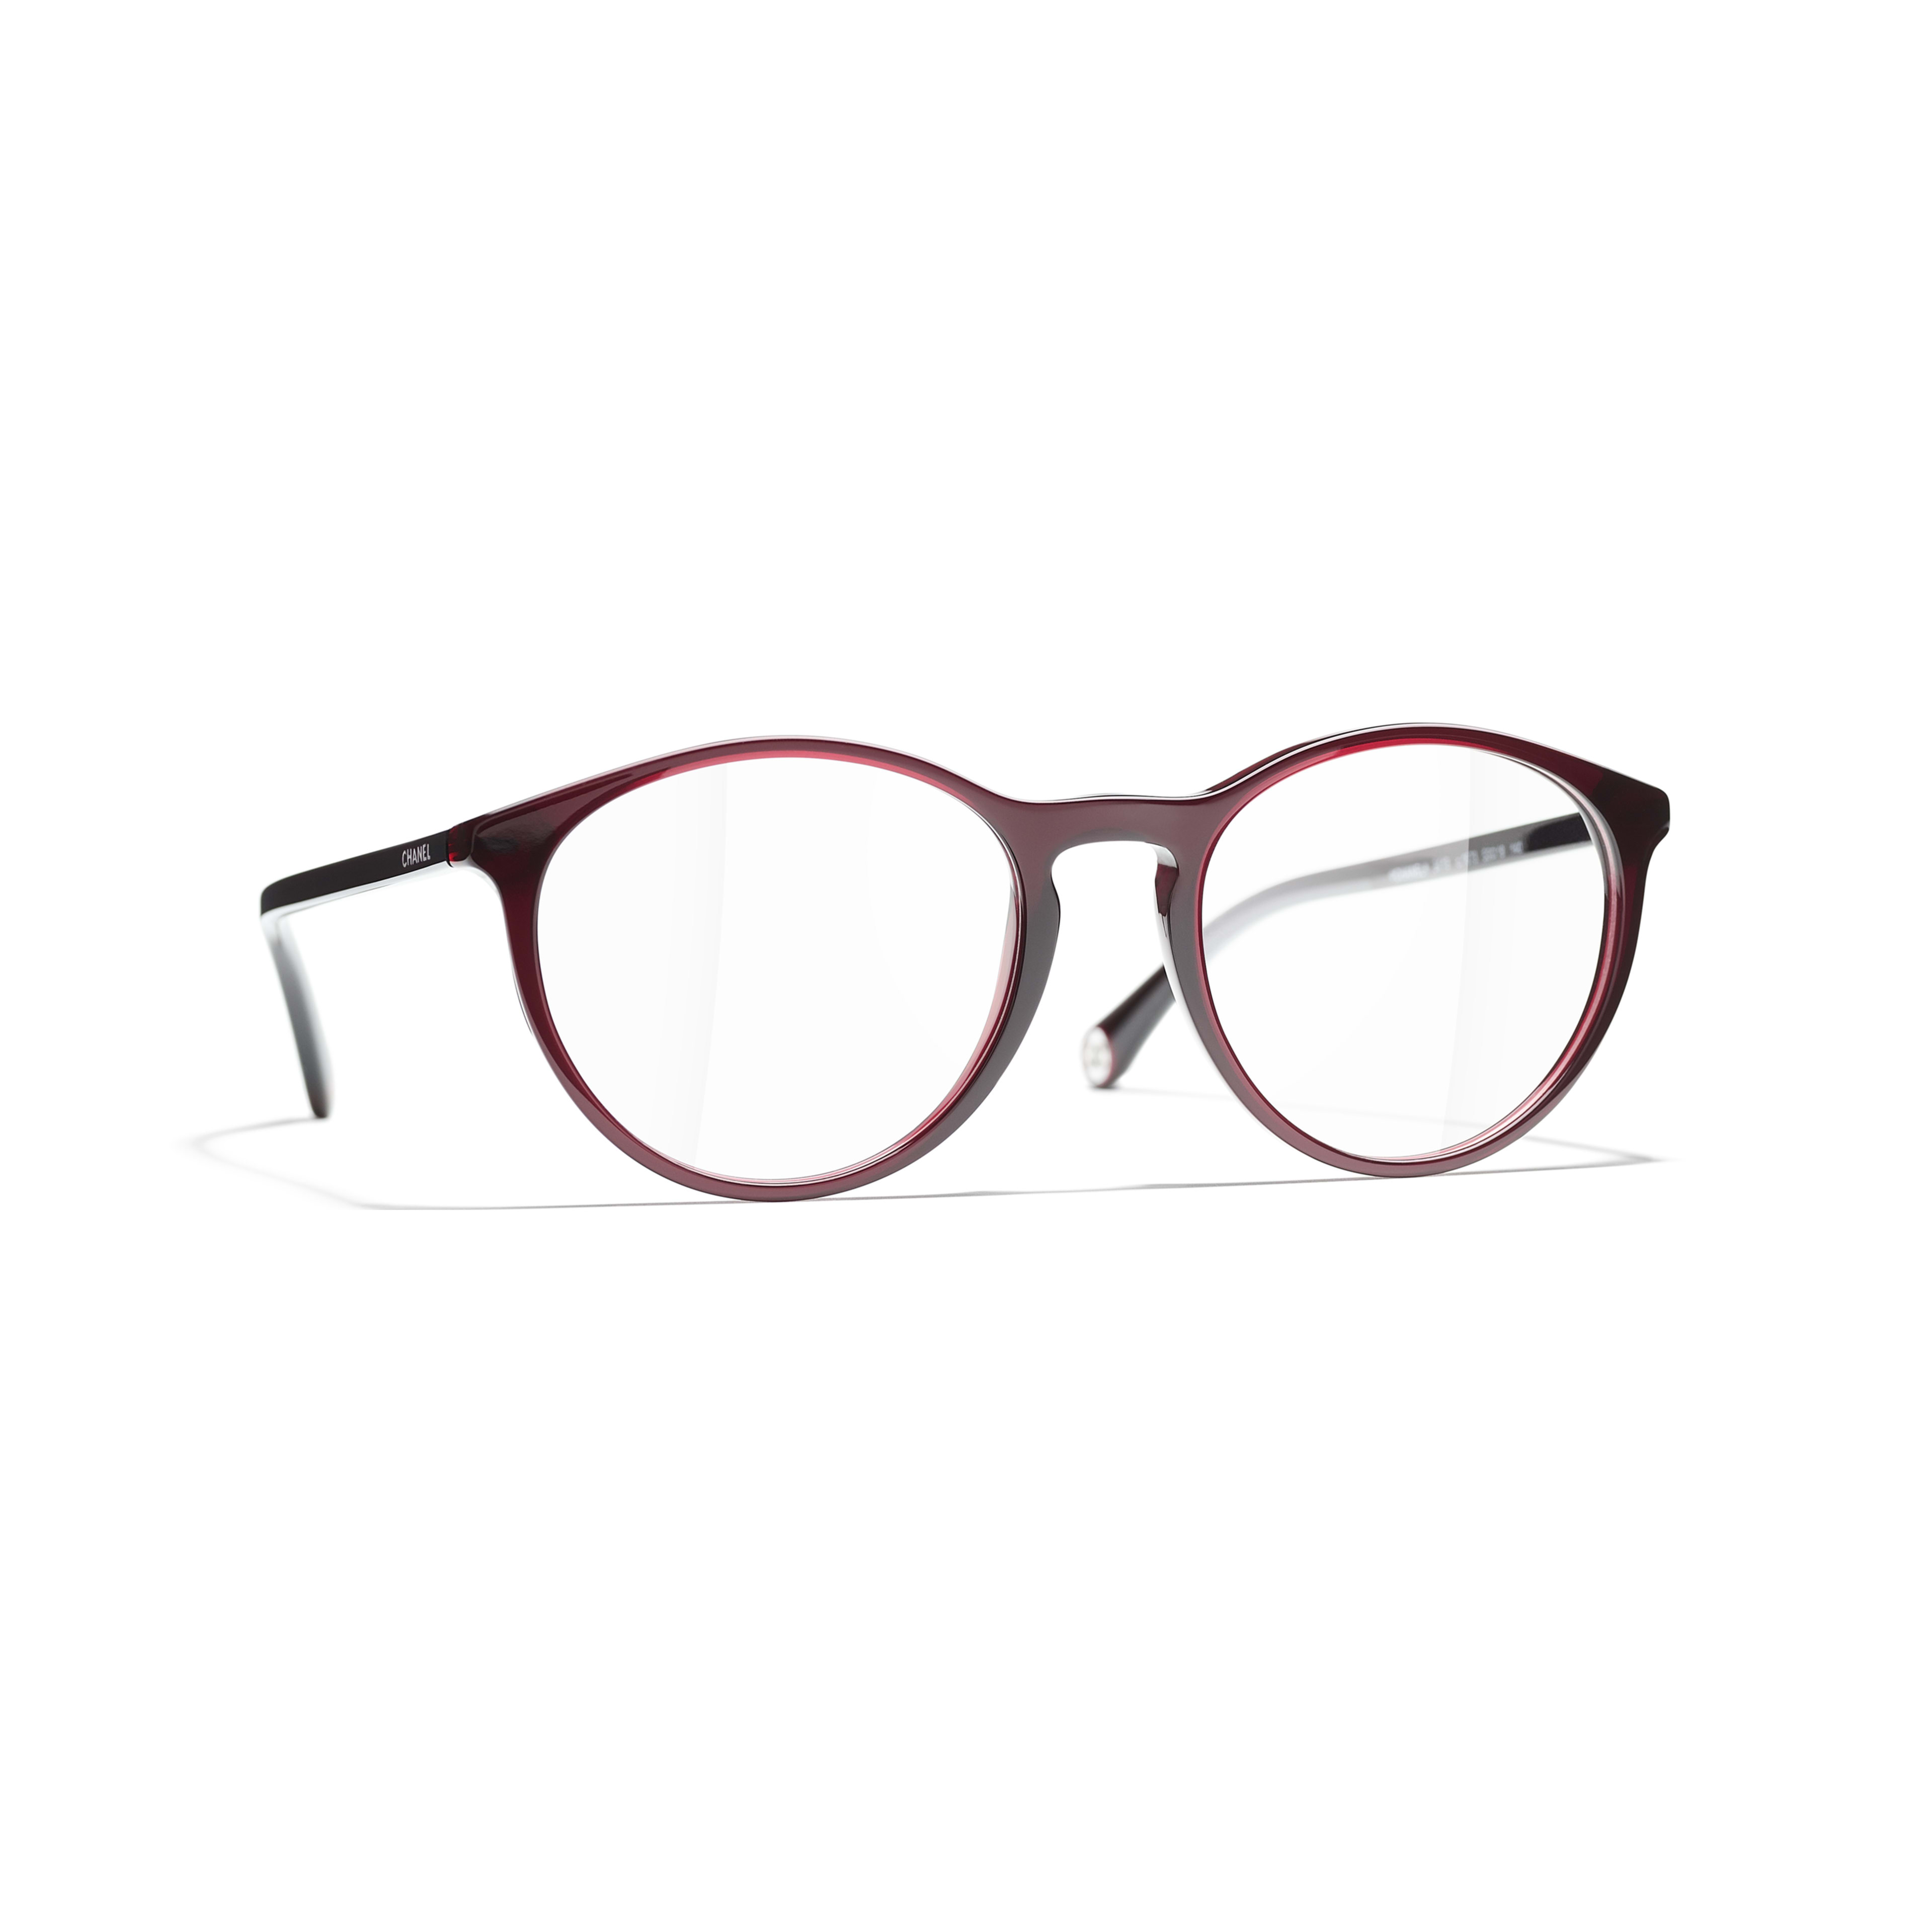 Pantos Eyeglasses - Dark Red - Acetate - CHANEL - Default view - see standard sized version